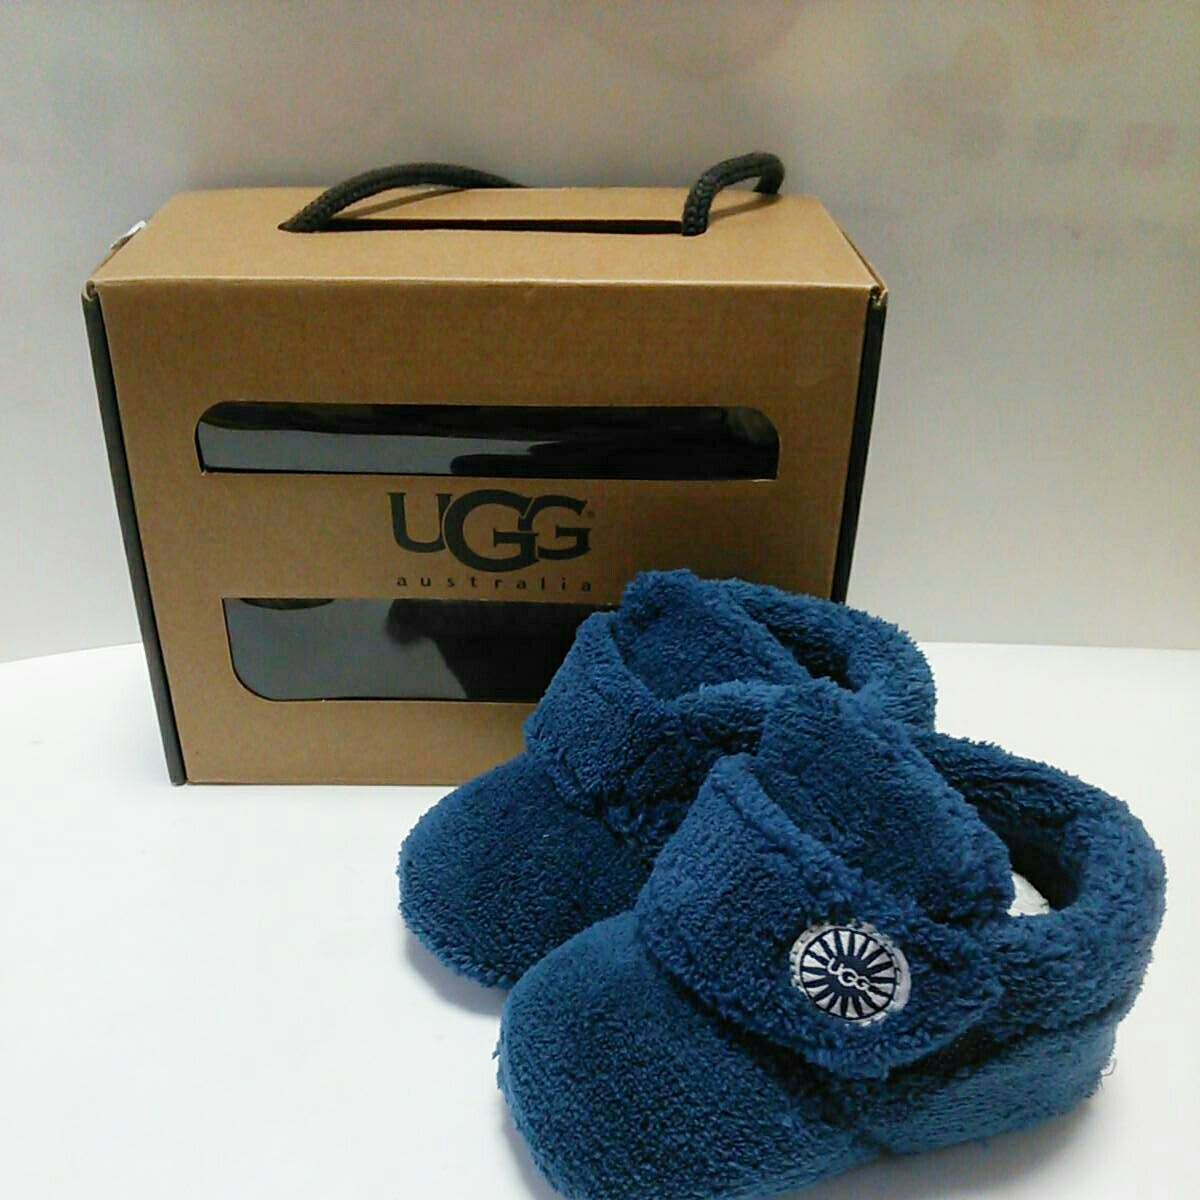 UGG UGG   new goods baby shoes 11cm 6~12 months 2 3 S First shoes navy 6e8cf93daa02